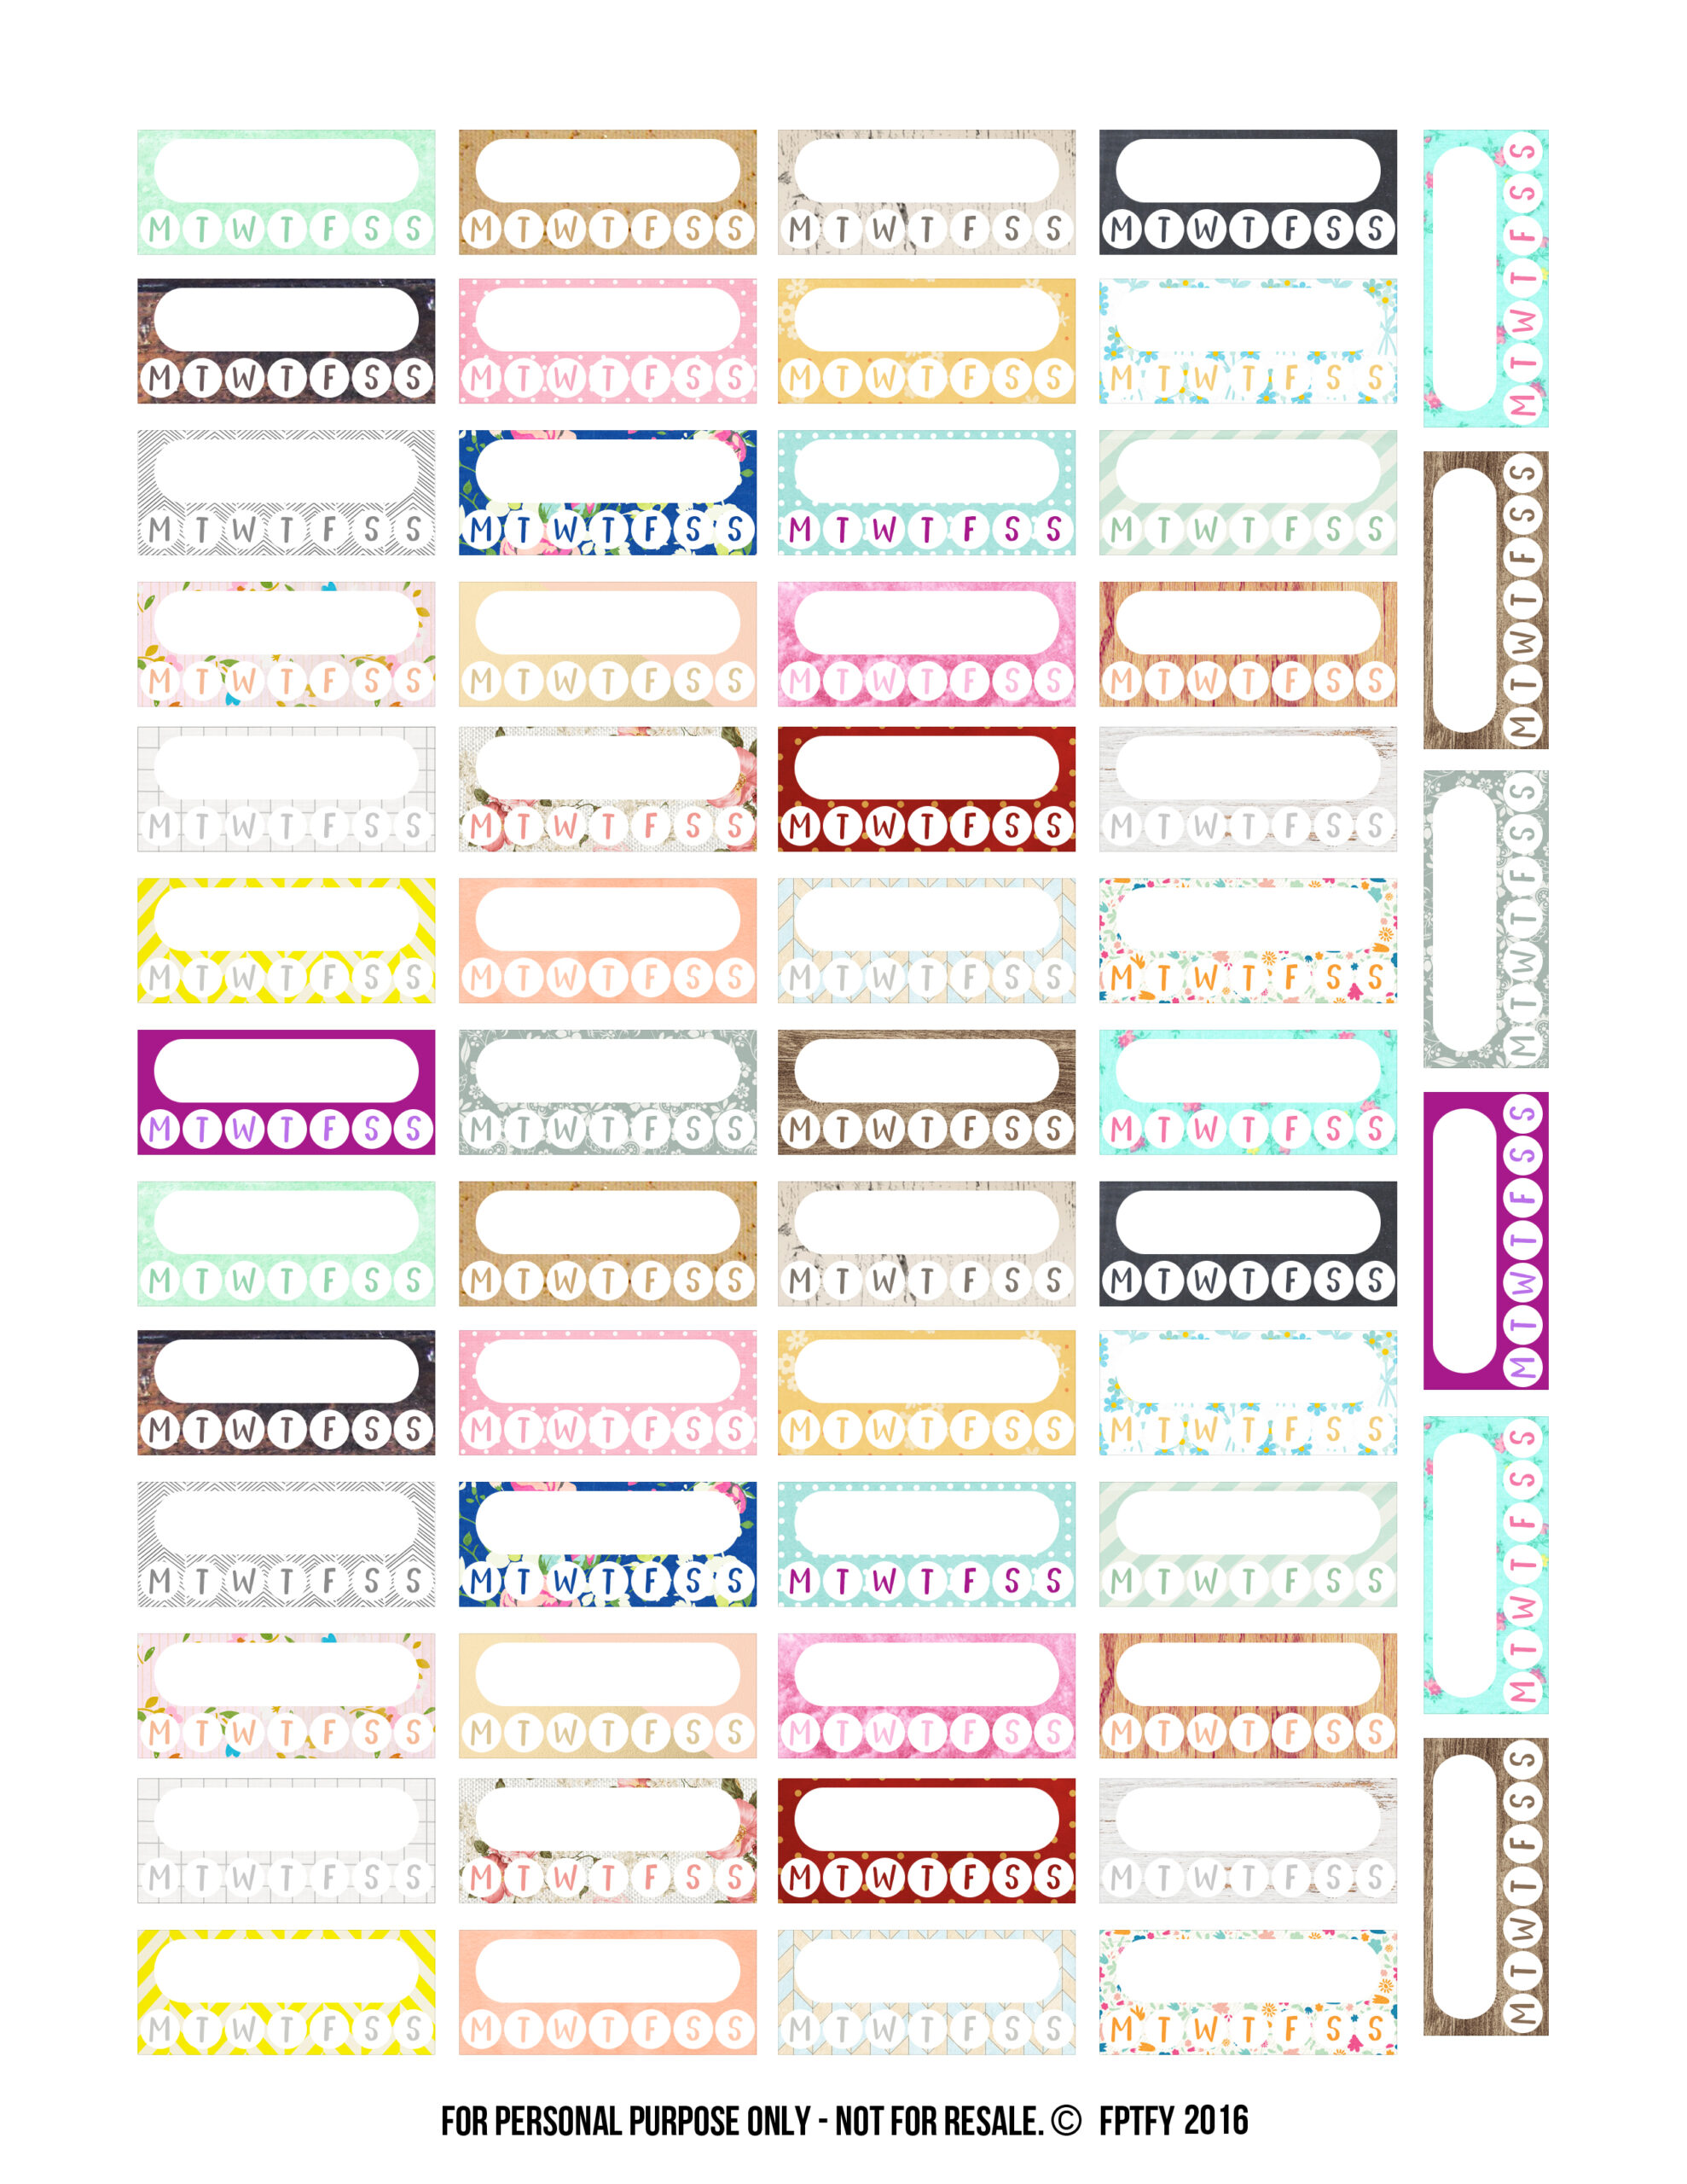 Free Variety Pack Habit Tracker Planner Stickers Free Pretty Things For You